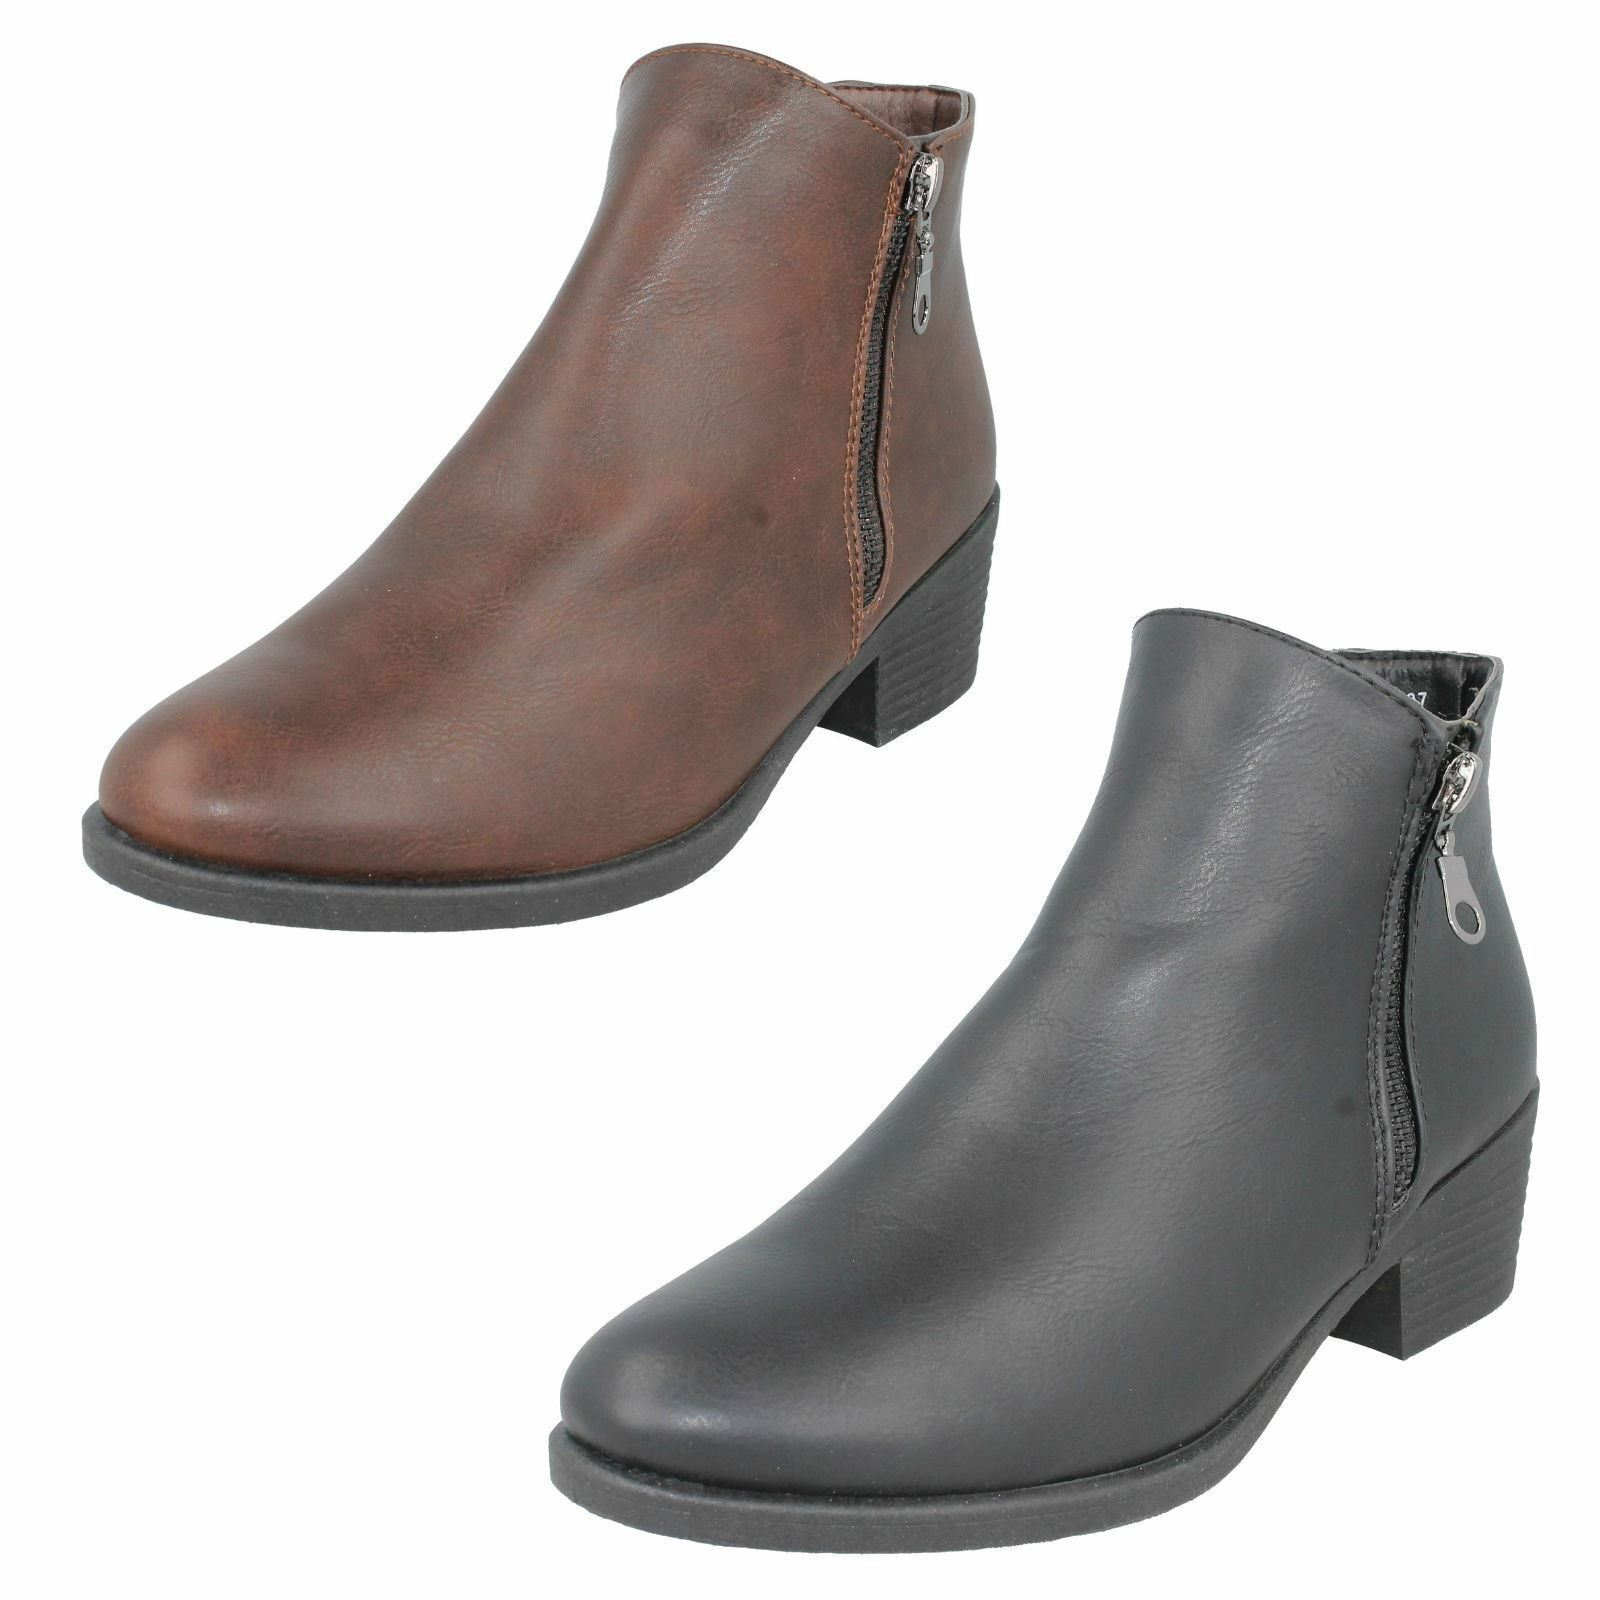 SALE Ladies Spot On Zip Fastening Ankle Boots F50736